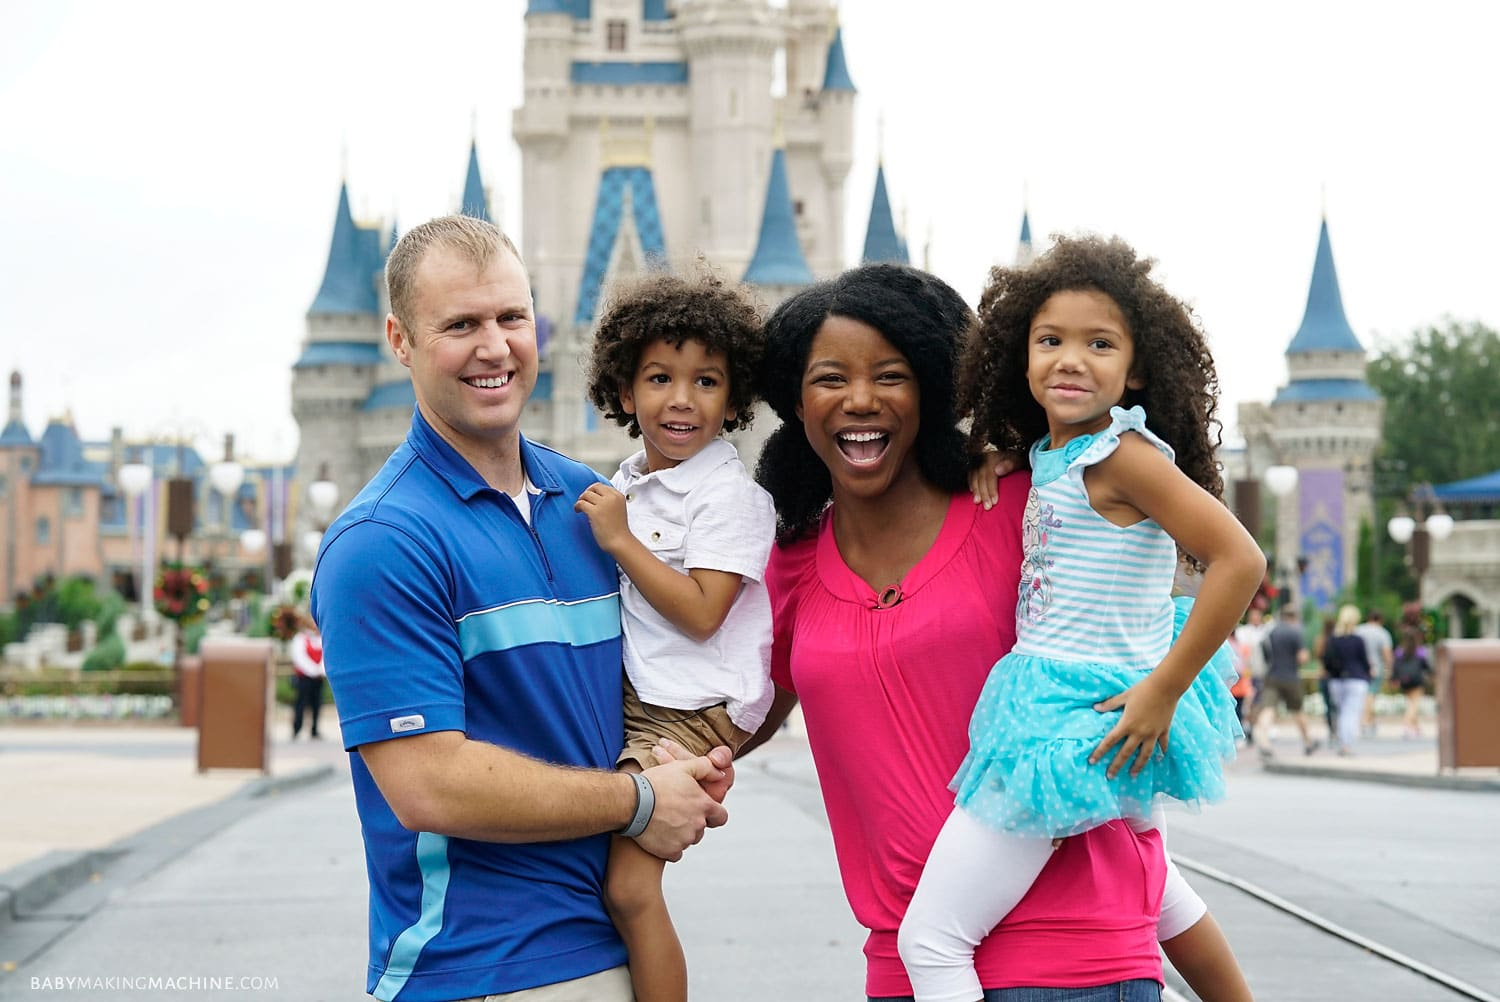 Interracial family at Disney World. Multiracial family blogger